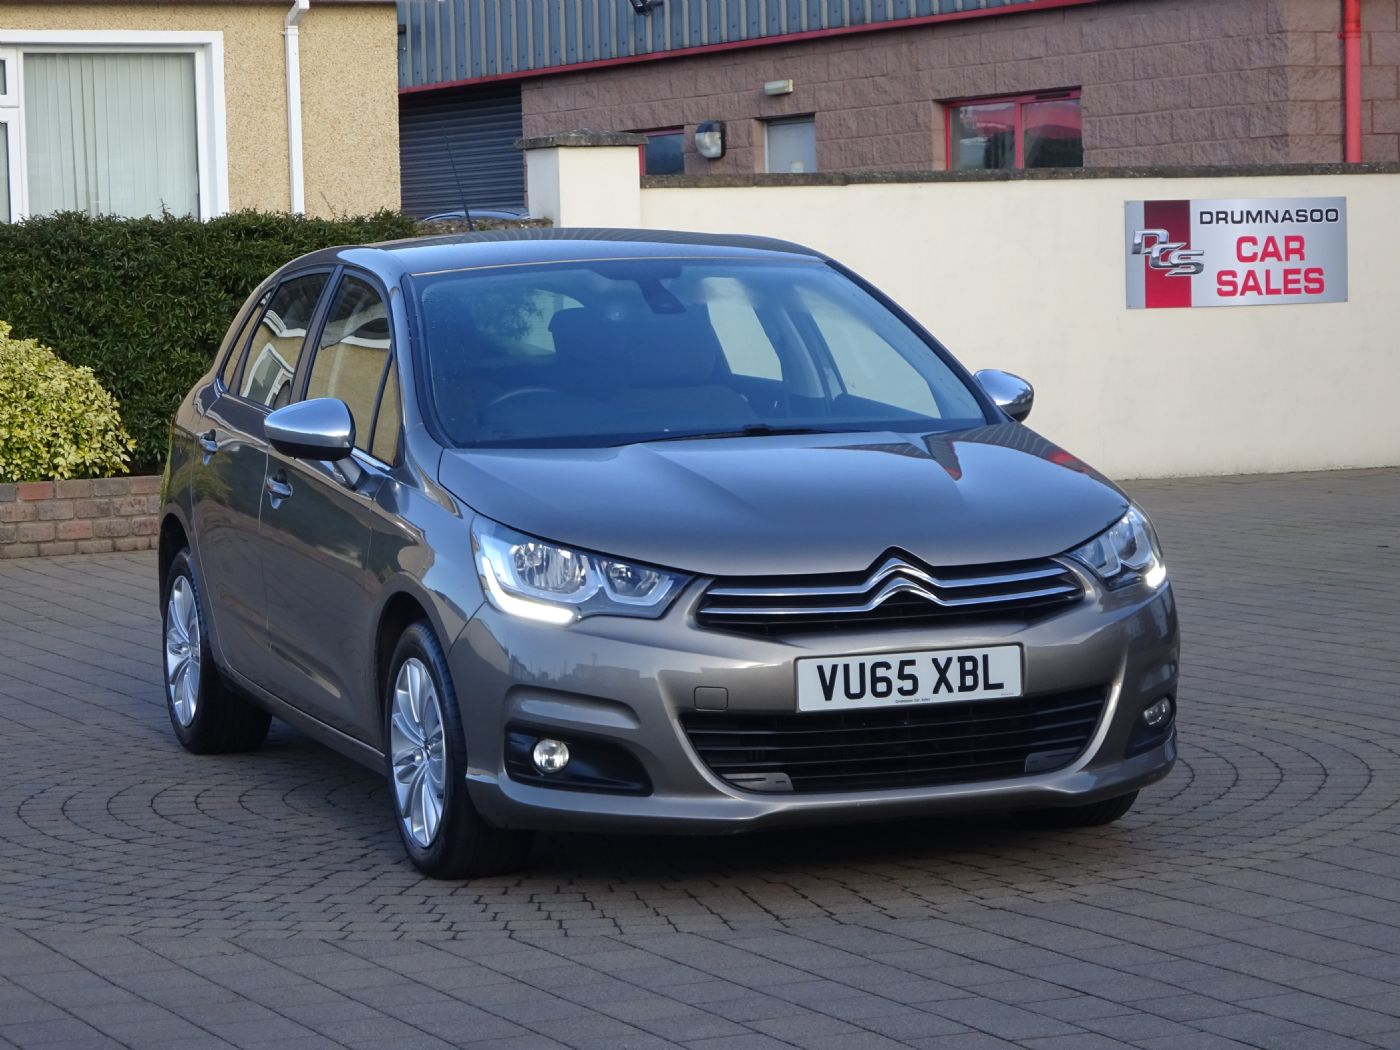 Citroen C4 Flair 1.6 Bluehdi, Zero road tax